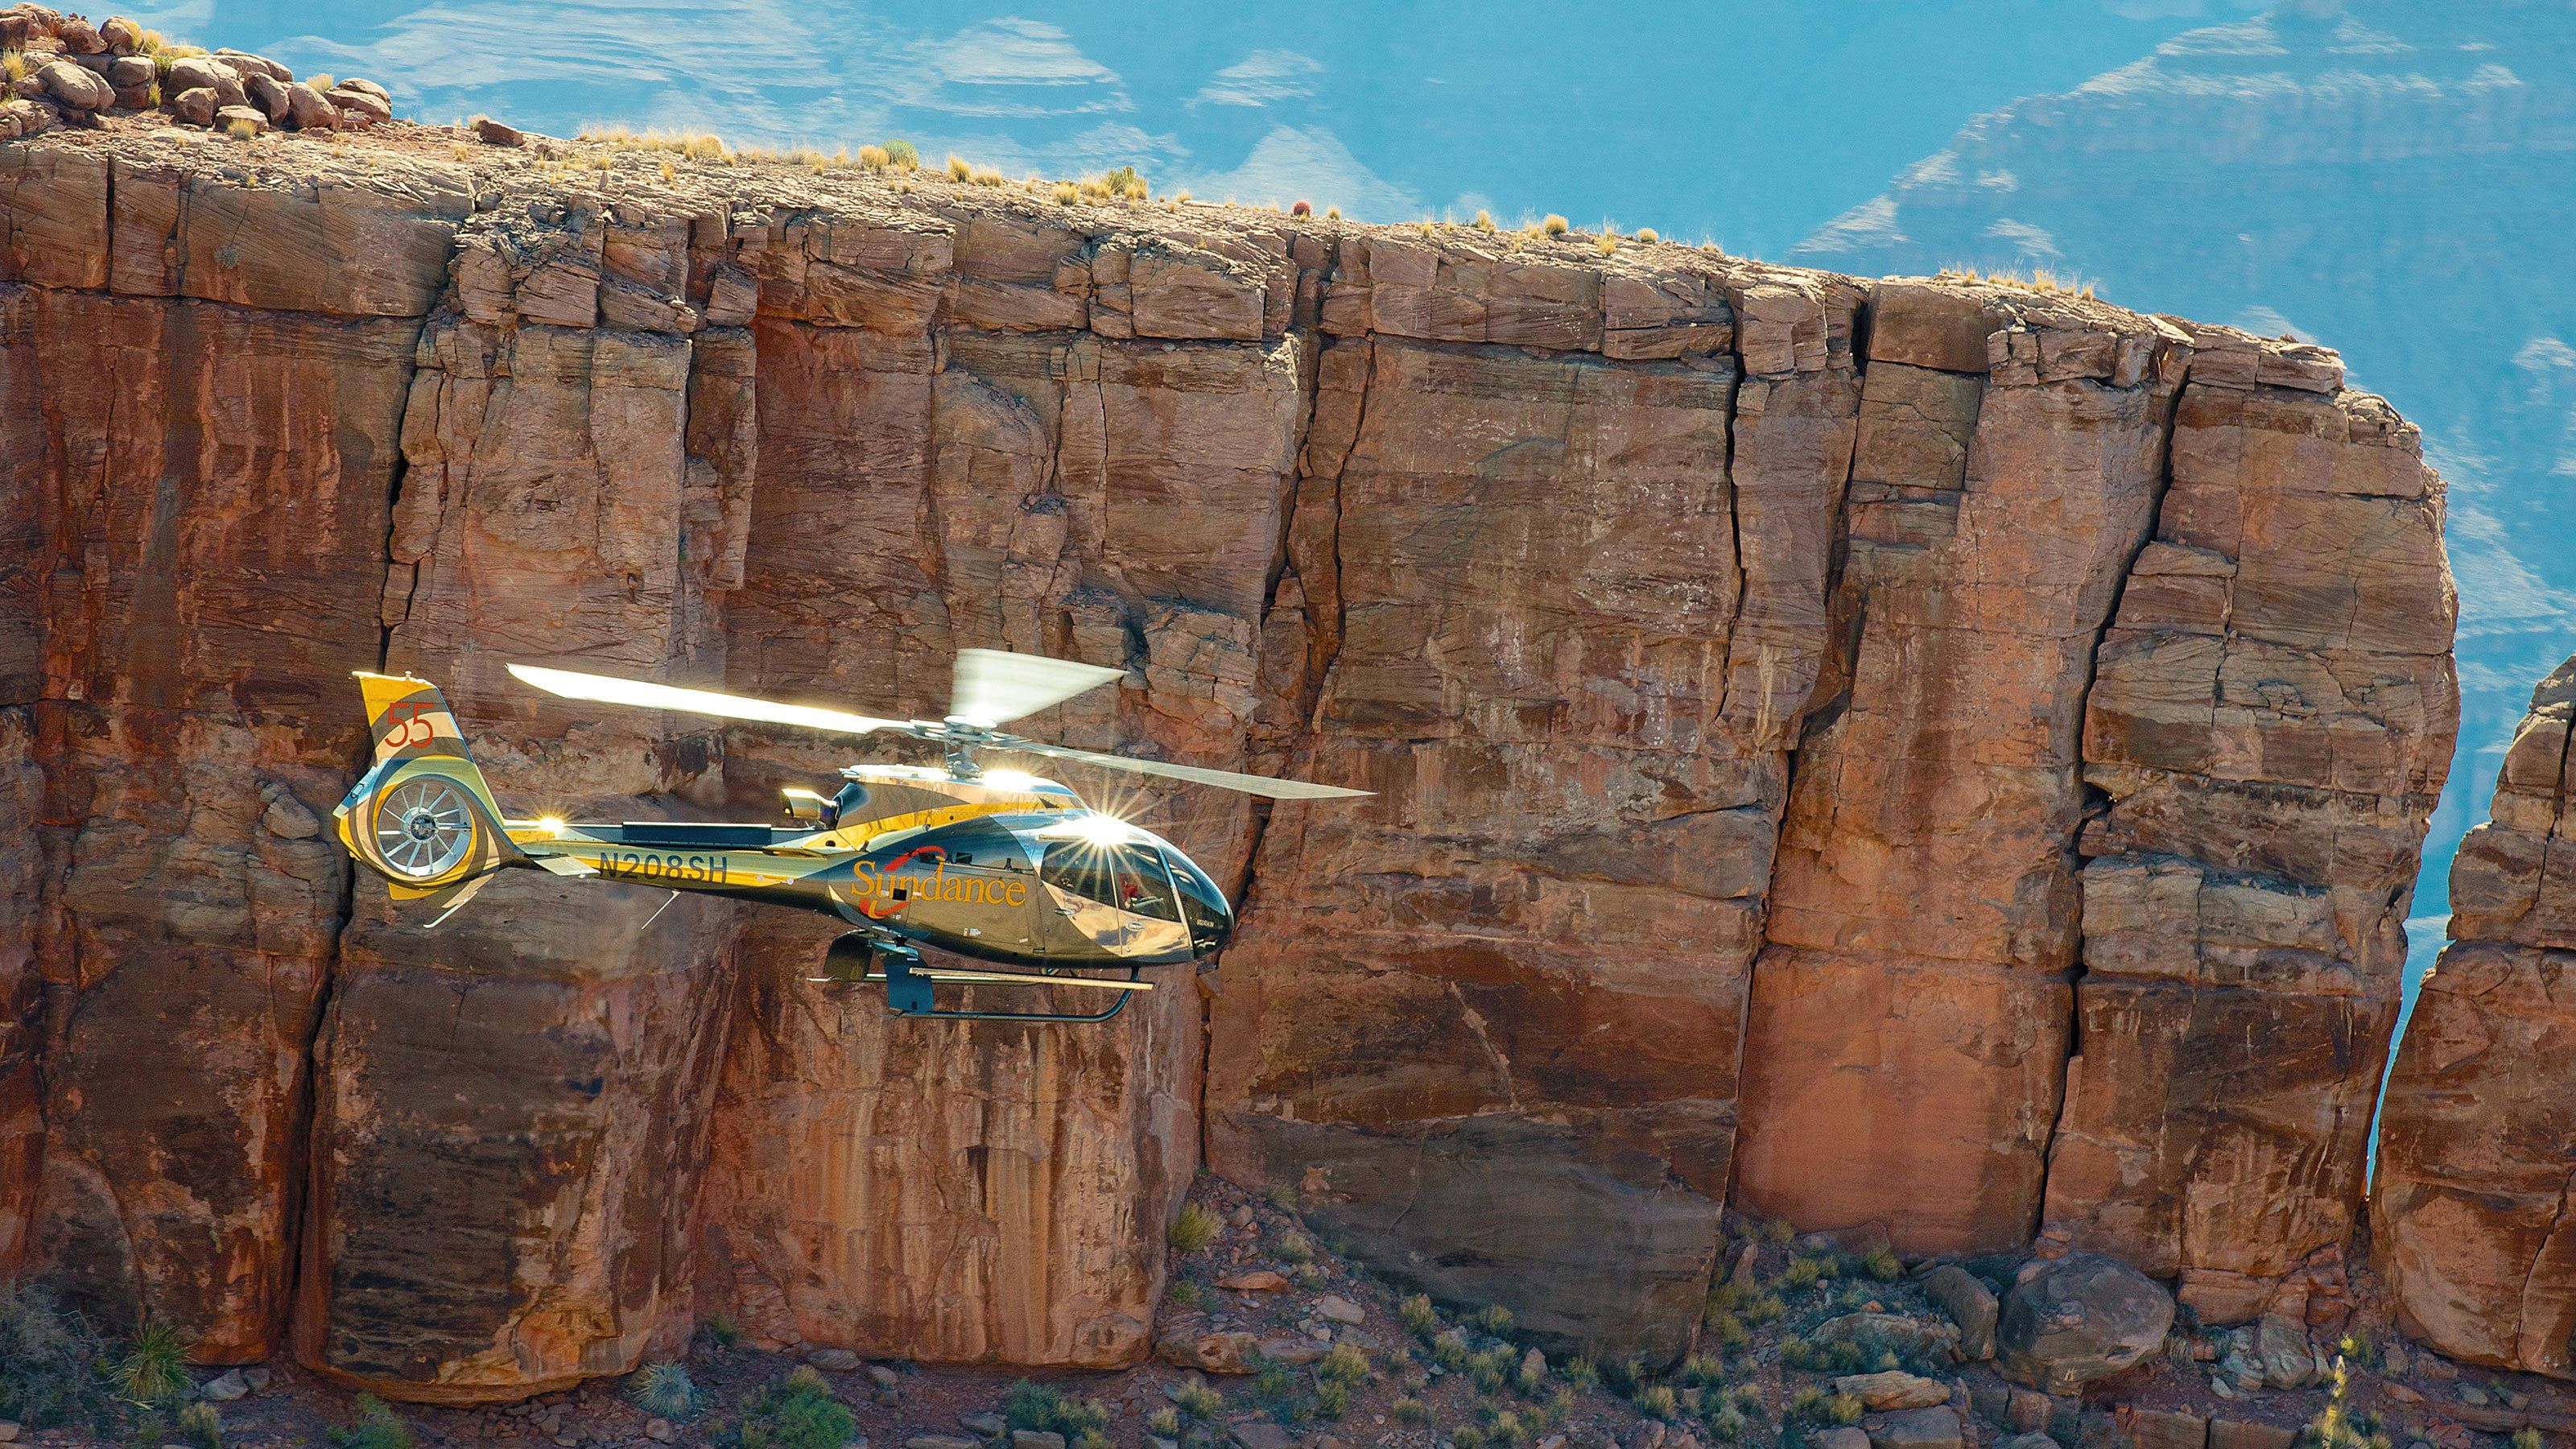 Flying helicopter with the Canyons in the background in Arizona